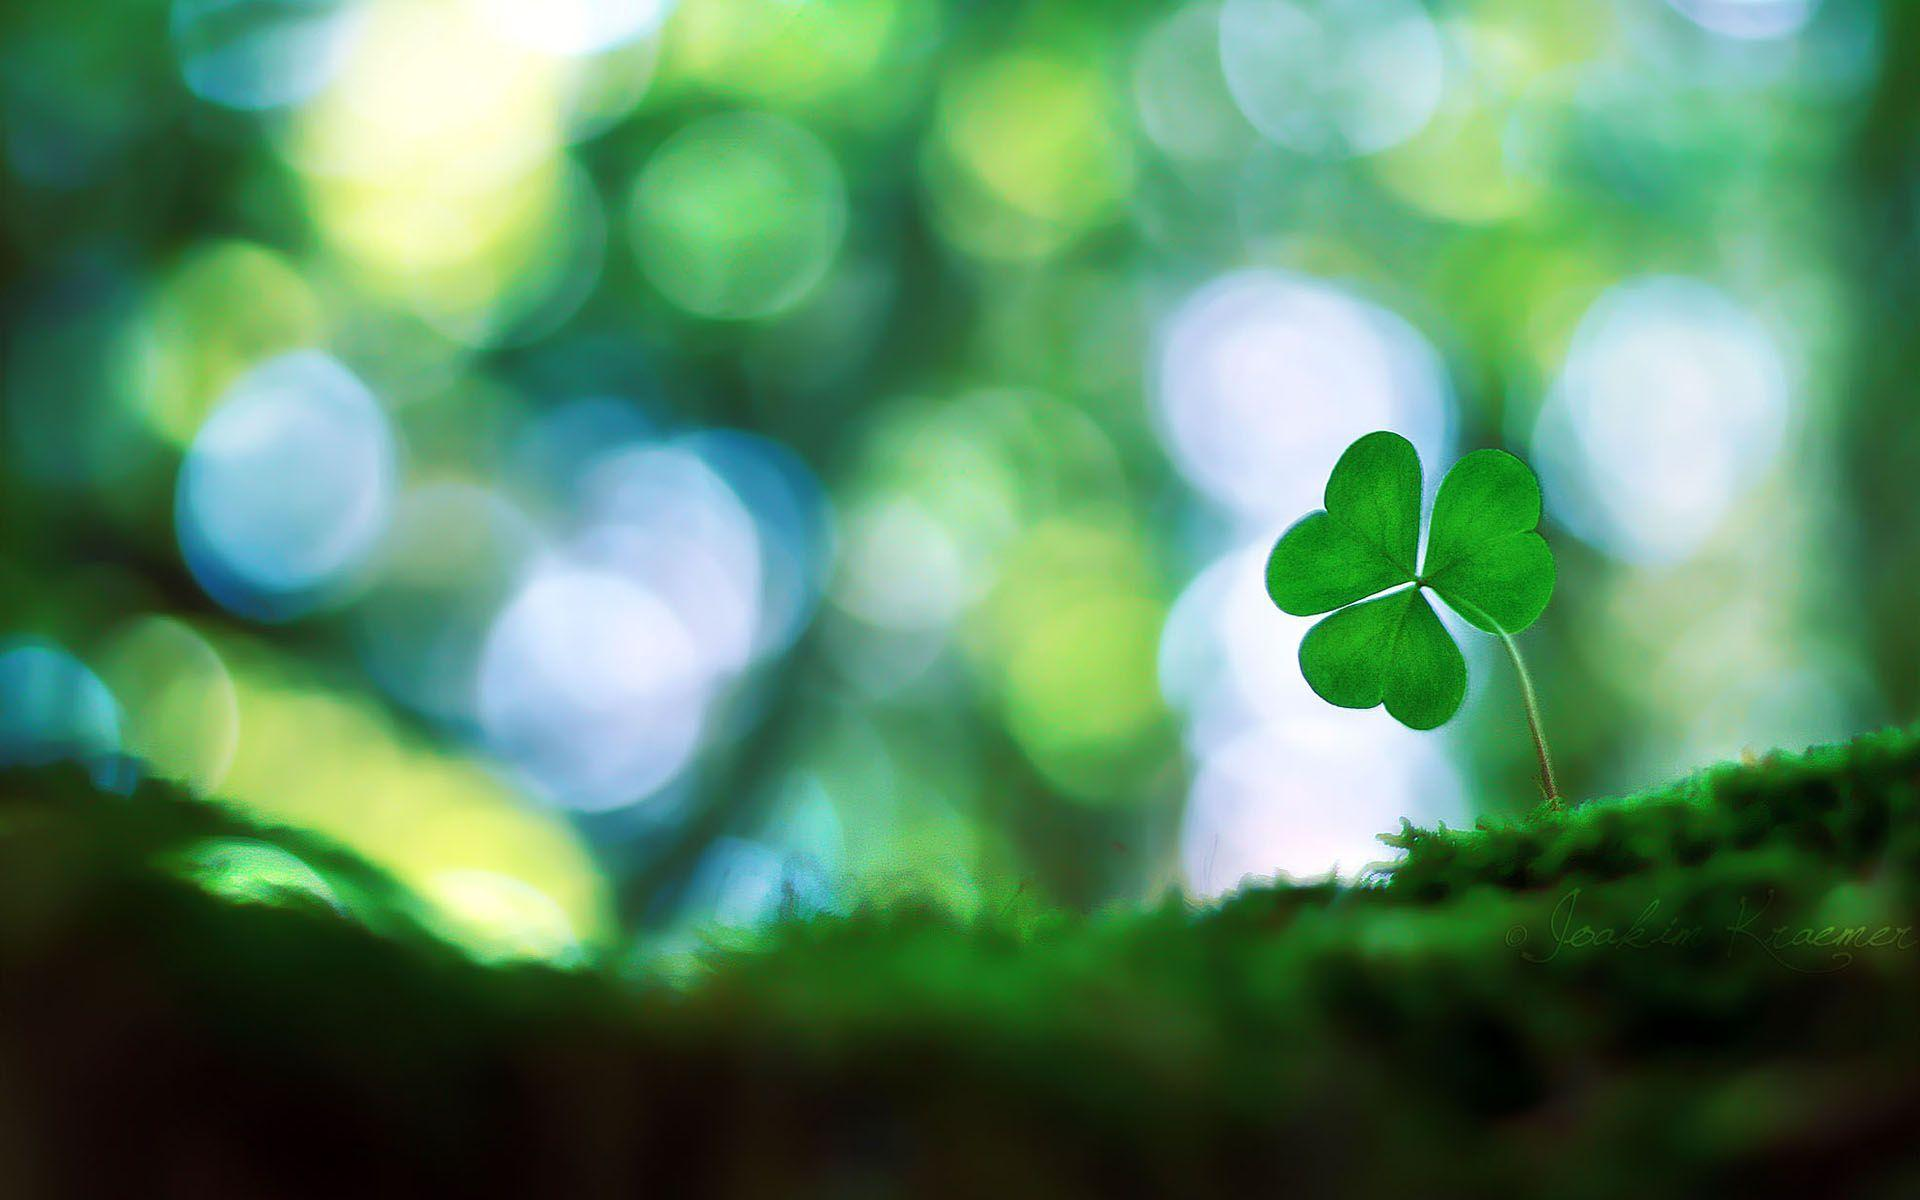 Four Leaf Clover Backgrounds Image & Pictures